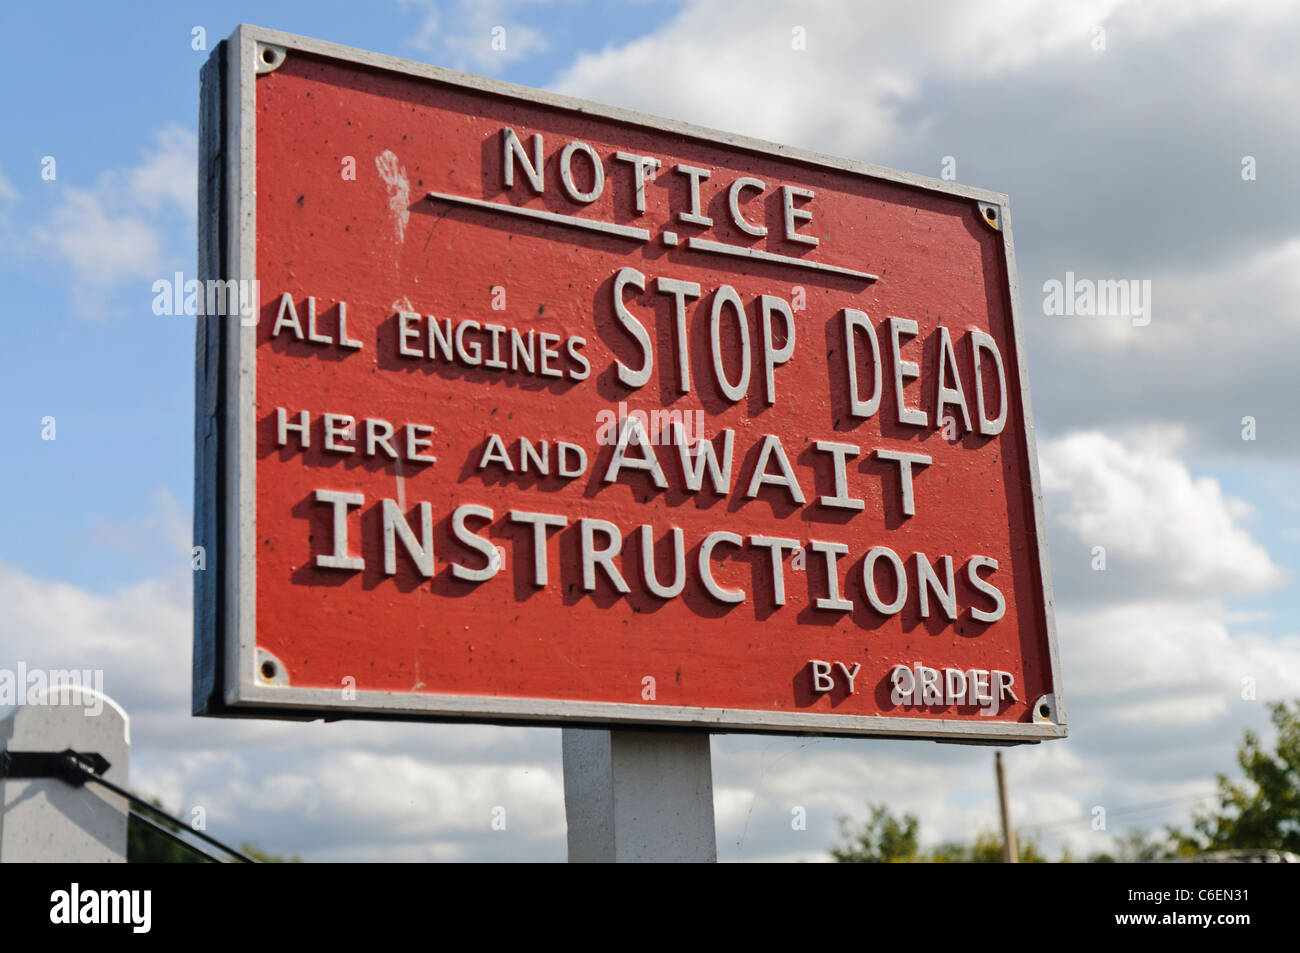 Sign on a railway instructing drivers to stop dead and await instructions - Stock Image